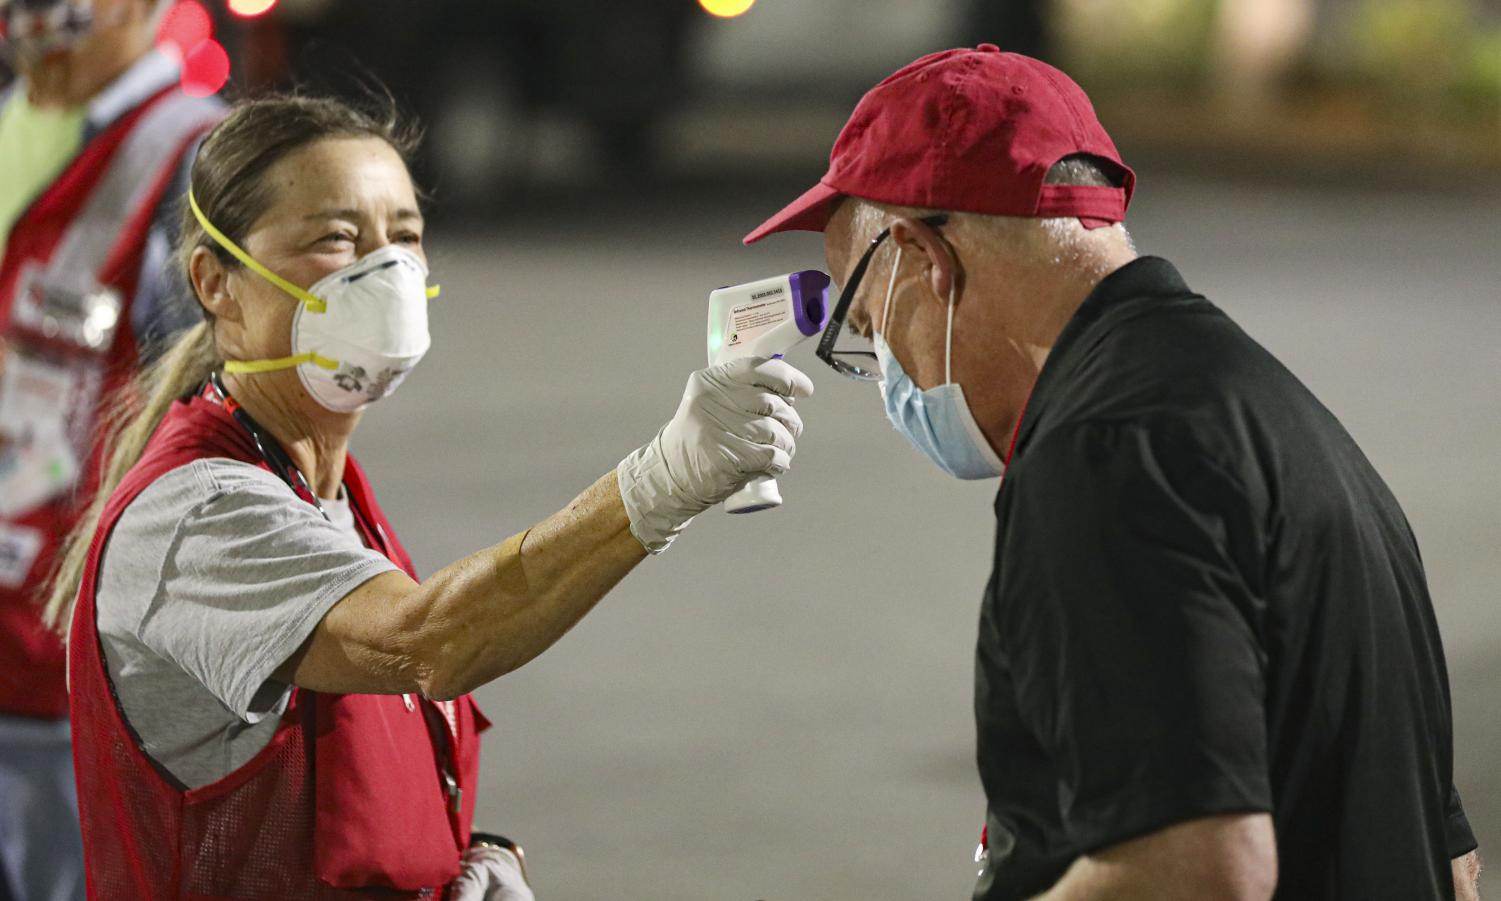 Liz Lepey, a registered nurse with the American Red Cross takes Dave Wagner's temperature at the Red cross evacuation center during the Erbes Fire in Thousand Oaks, CA, on Thursday, Jan. 14.